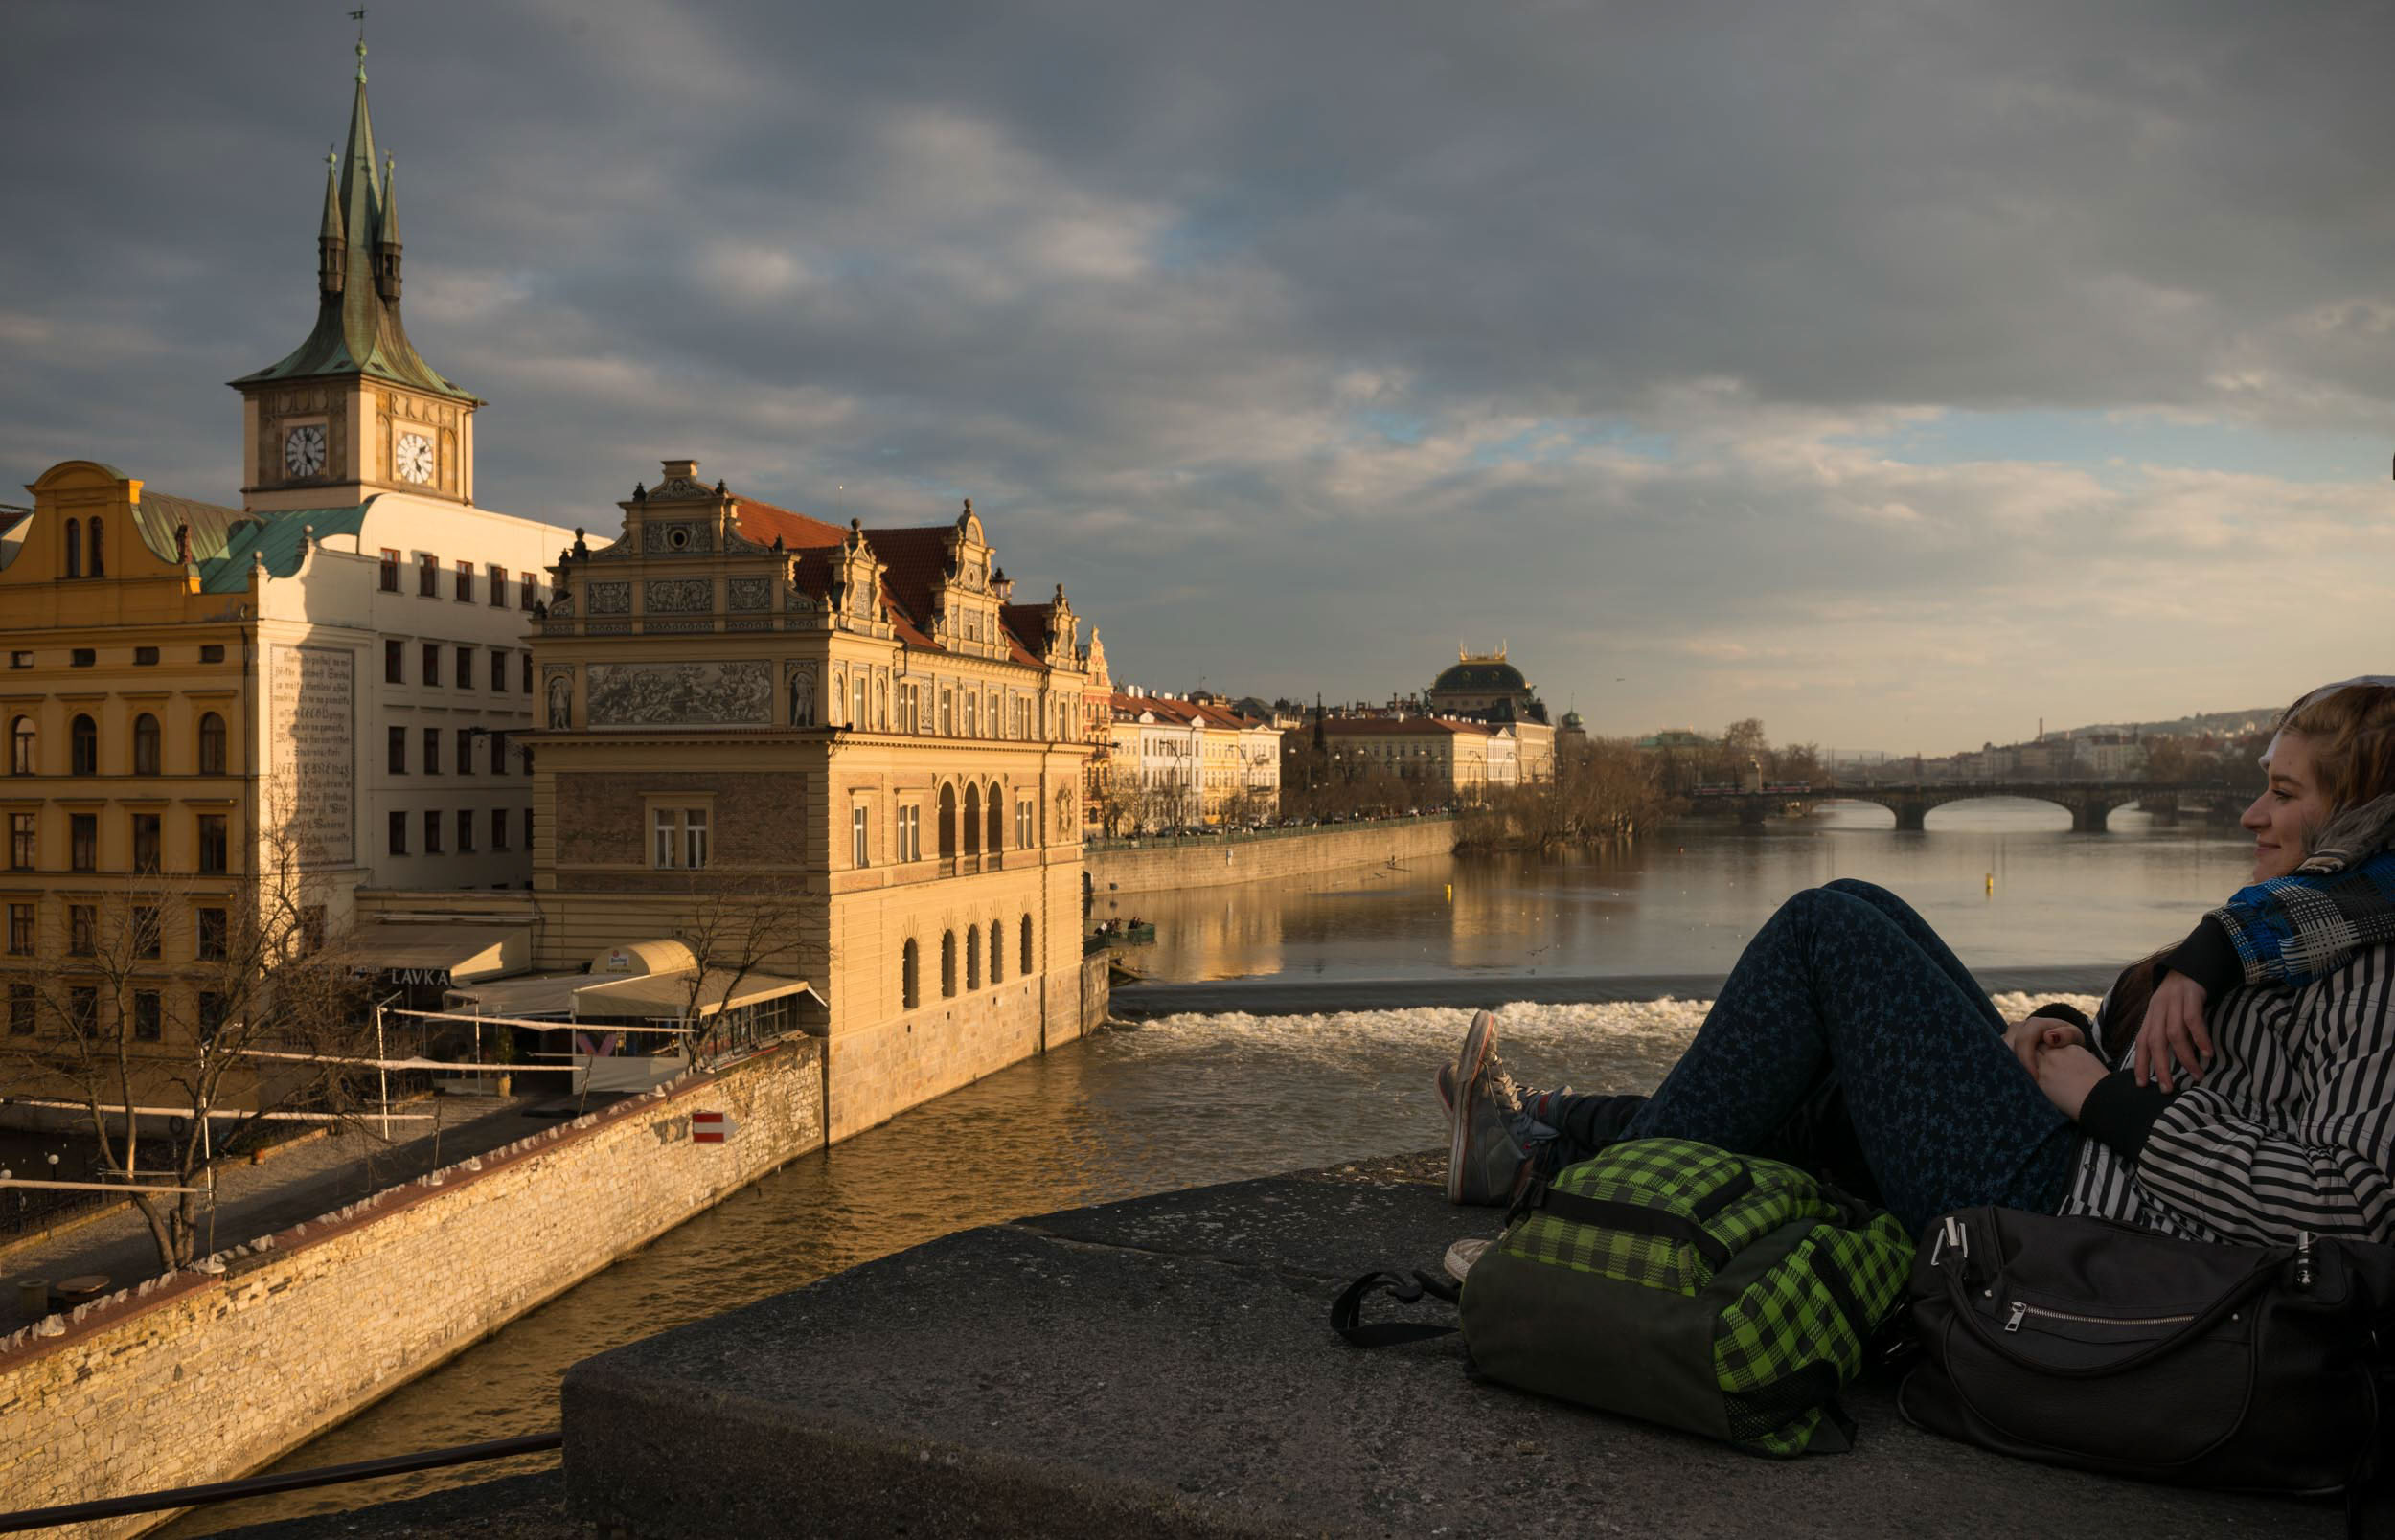 vltava-river-view-prague-czech-republic